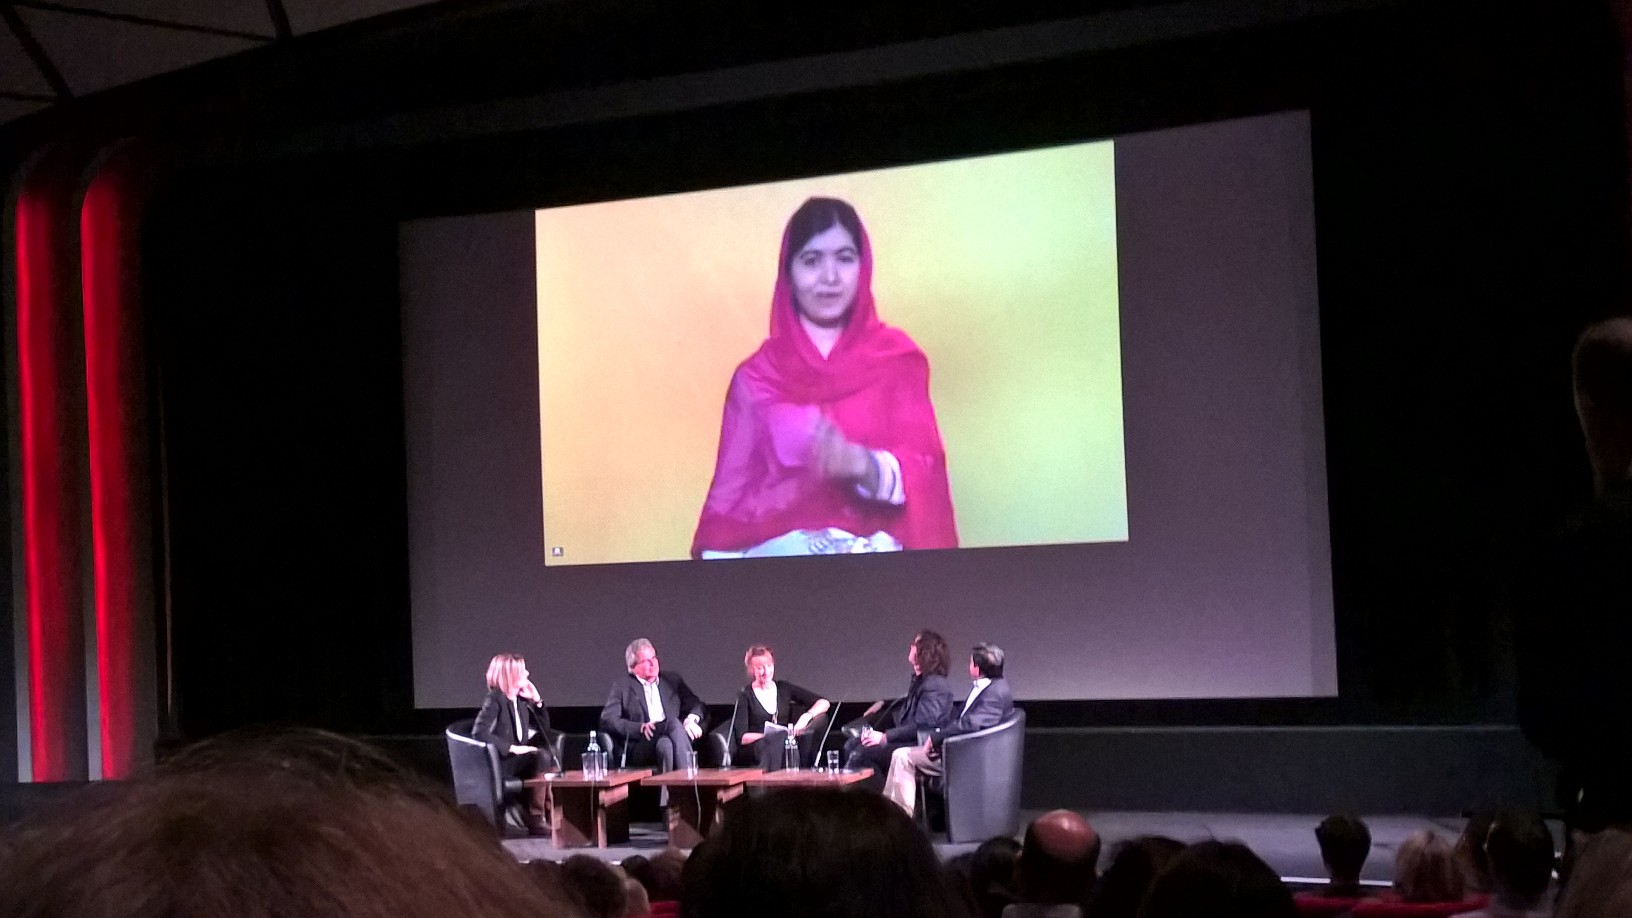 Malala Q&A session over skype